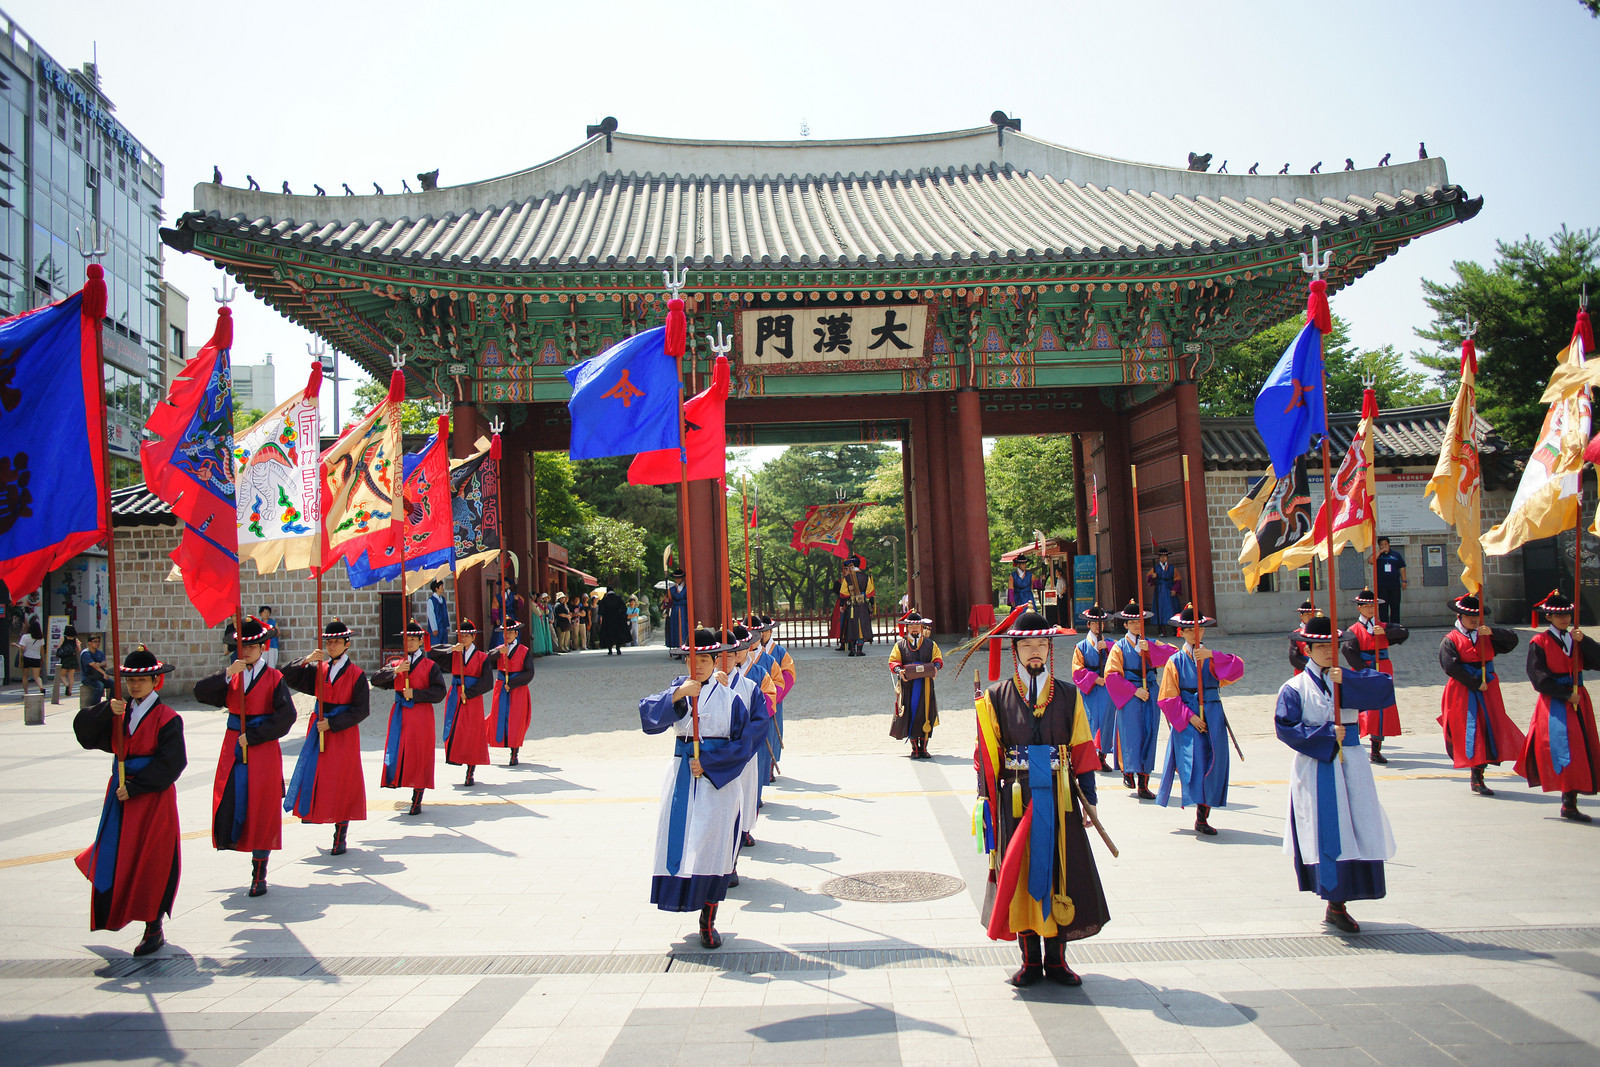 Royal Guard changing ceremony at Gyeongbokgung Palace (Seoul, South Korea)